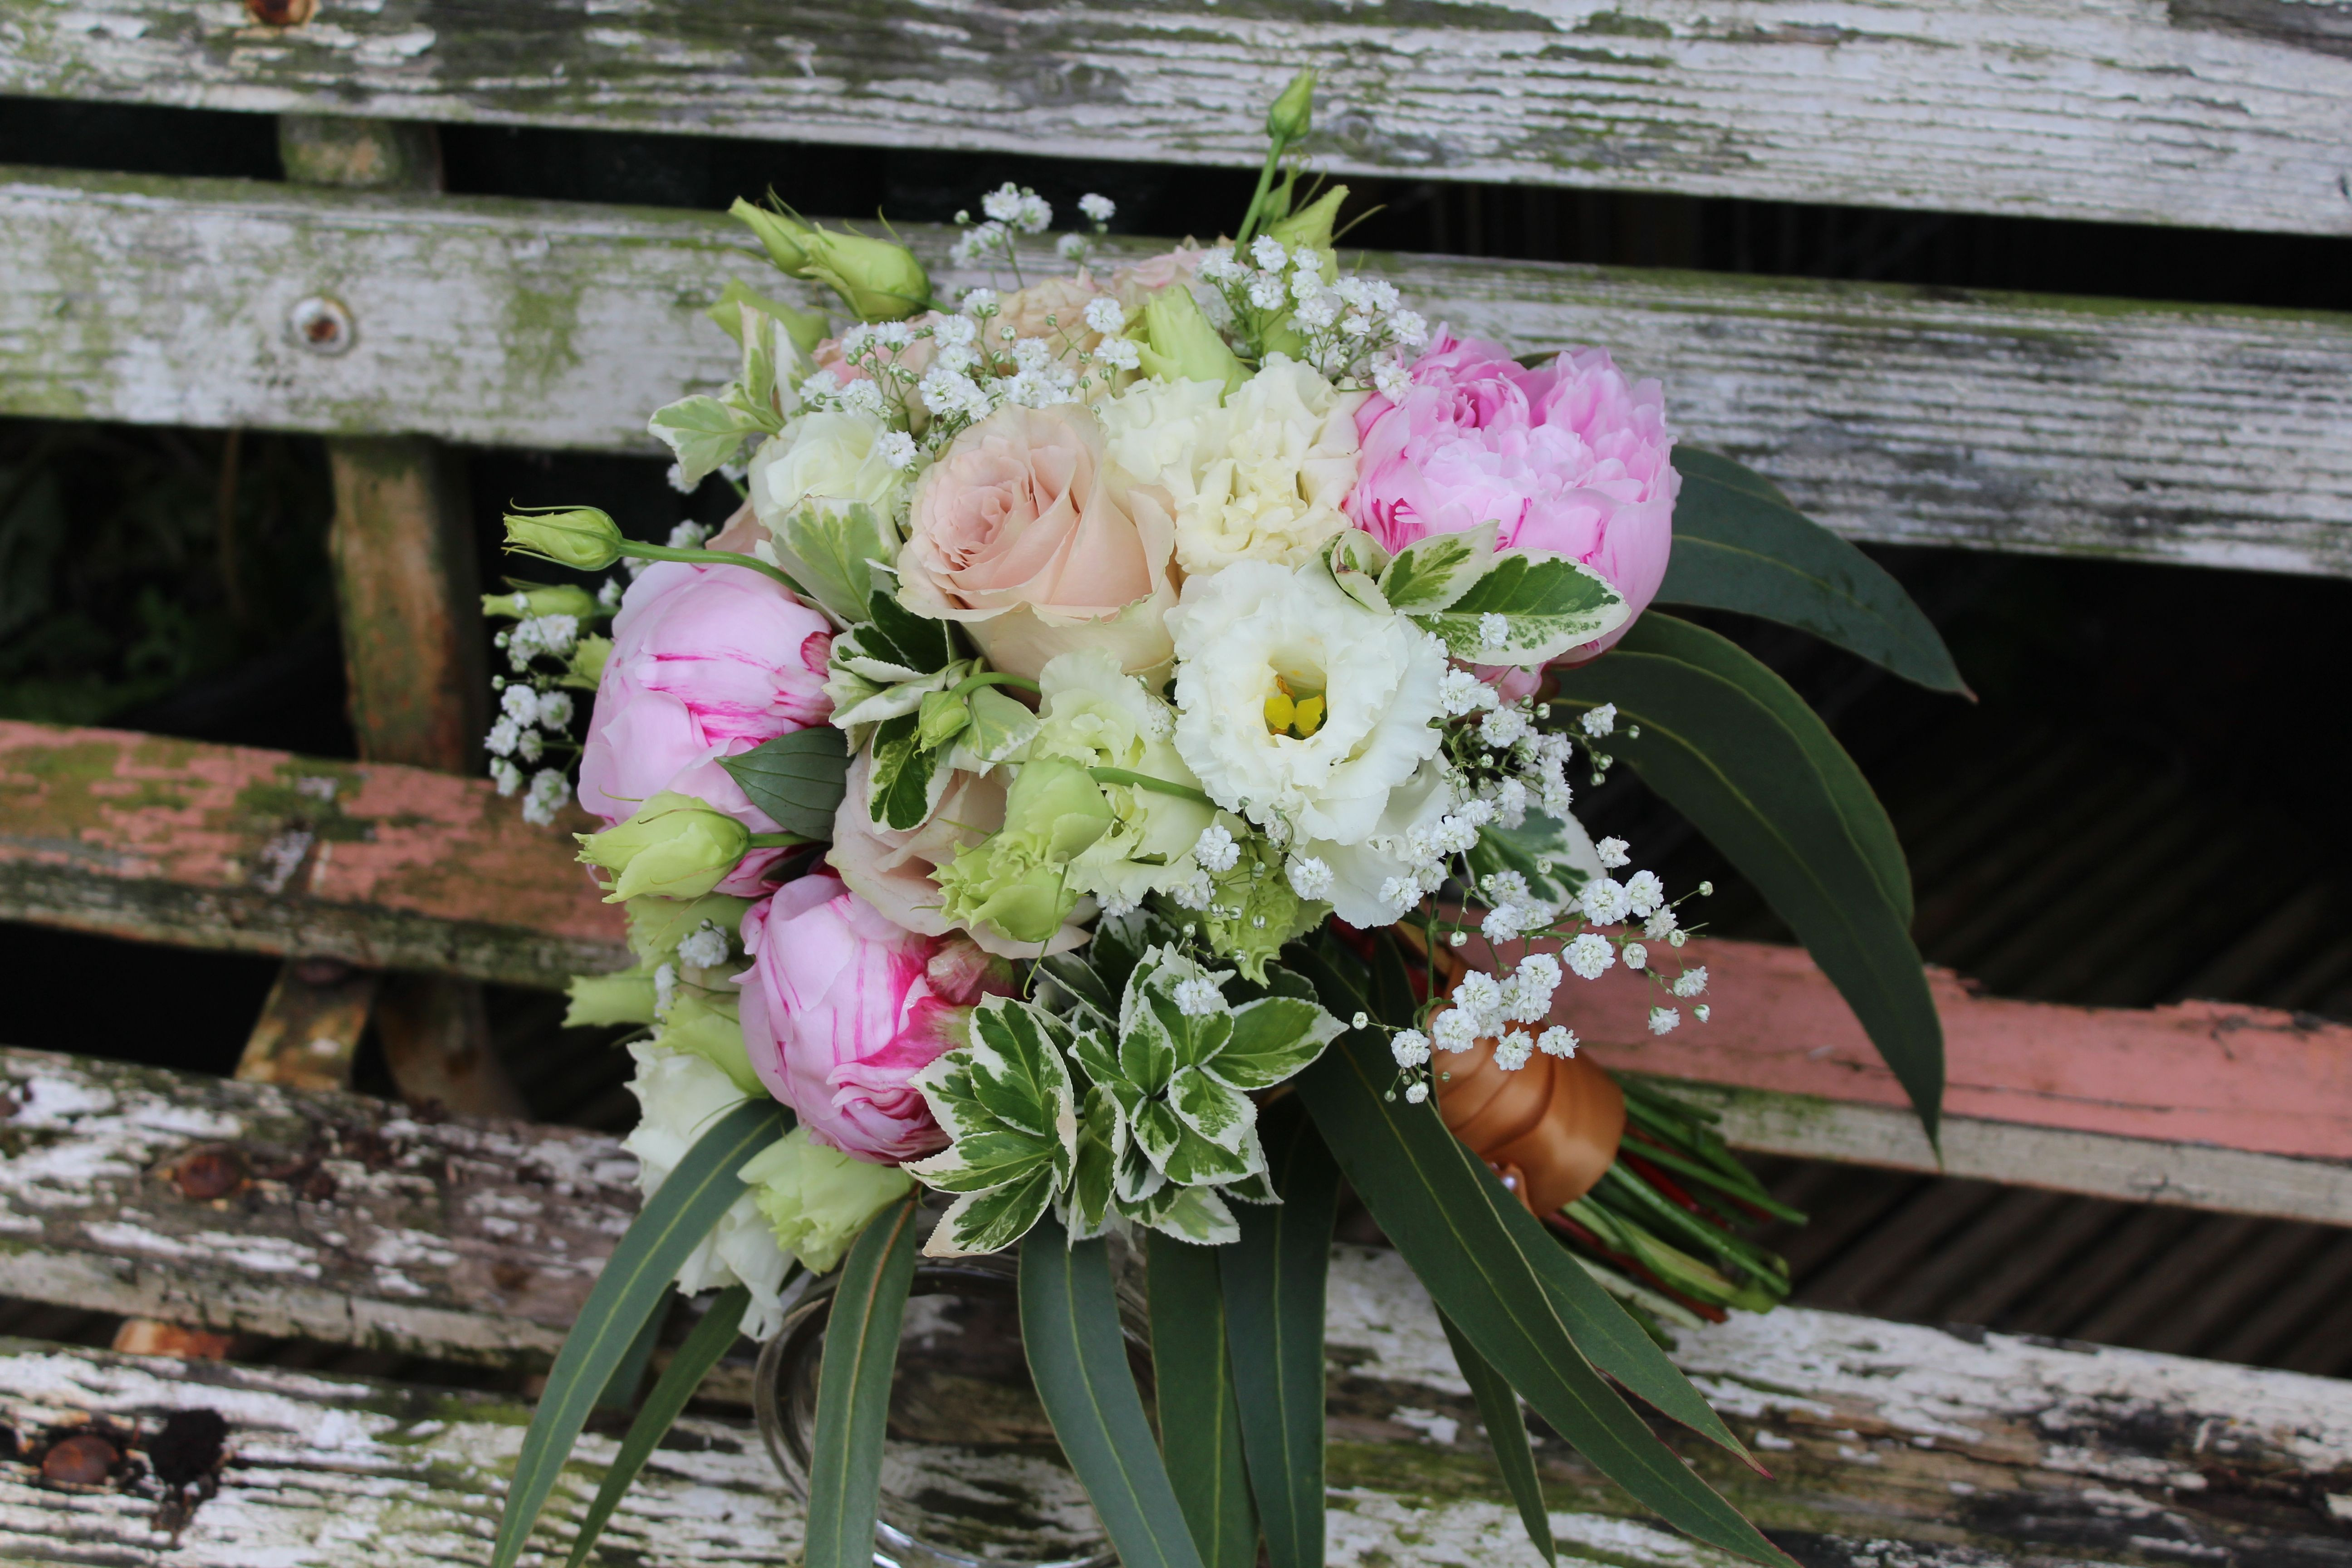 Wedding bouquet in light and blush pinks with peonies roses lizianthus gypsophila and